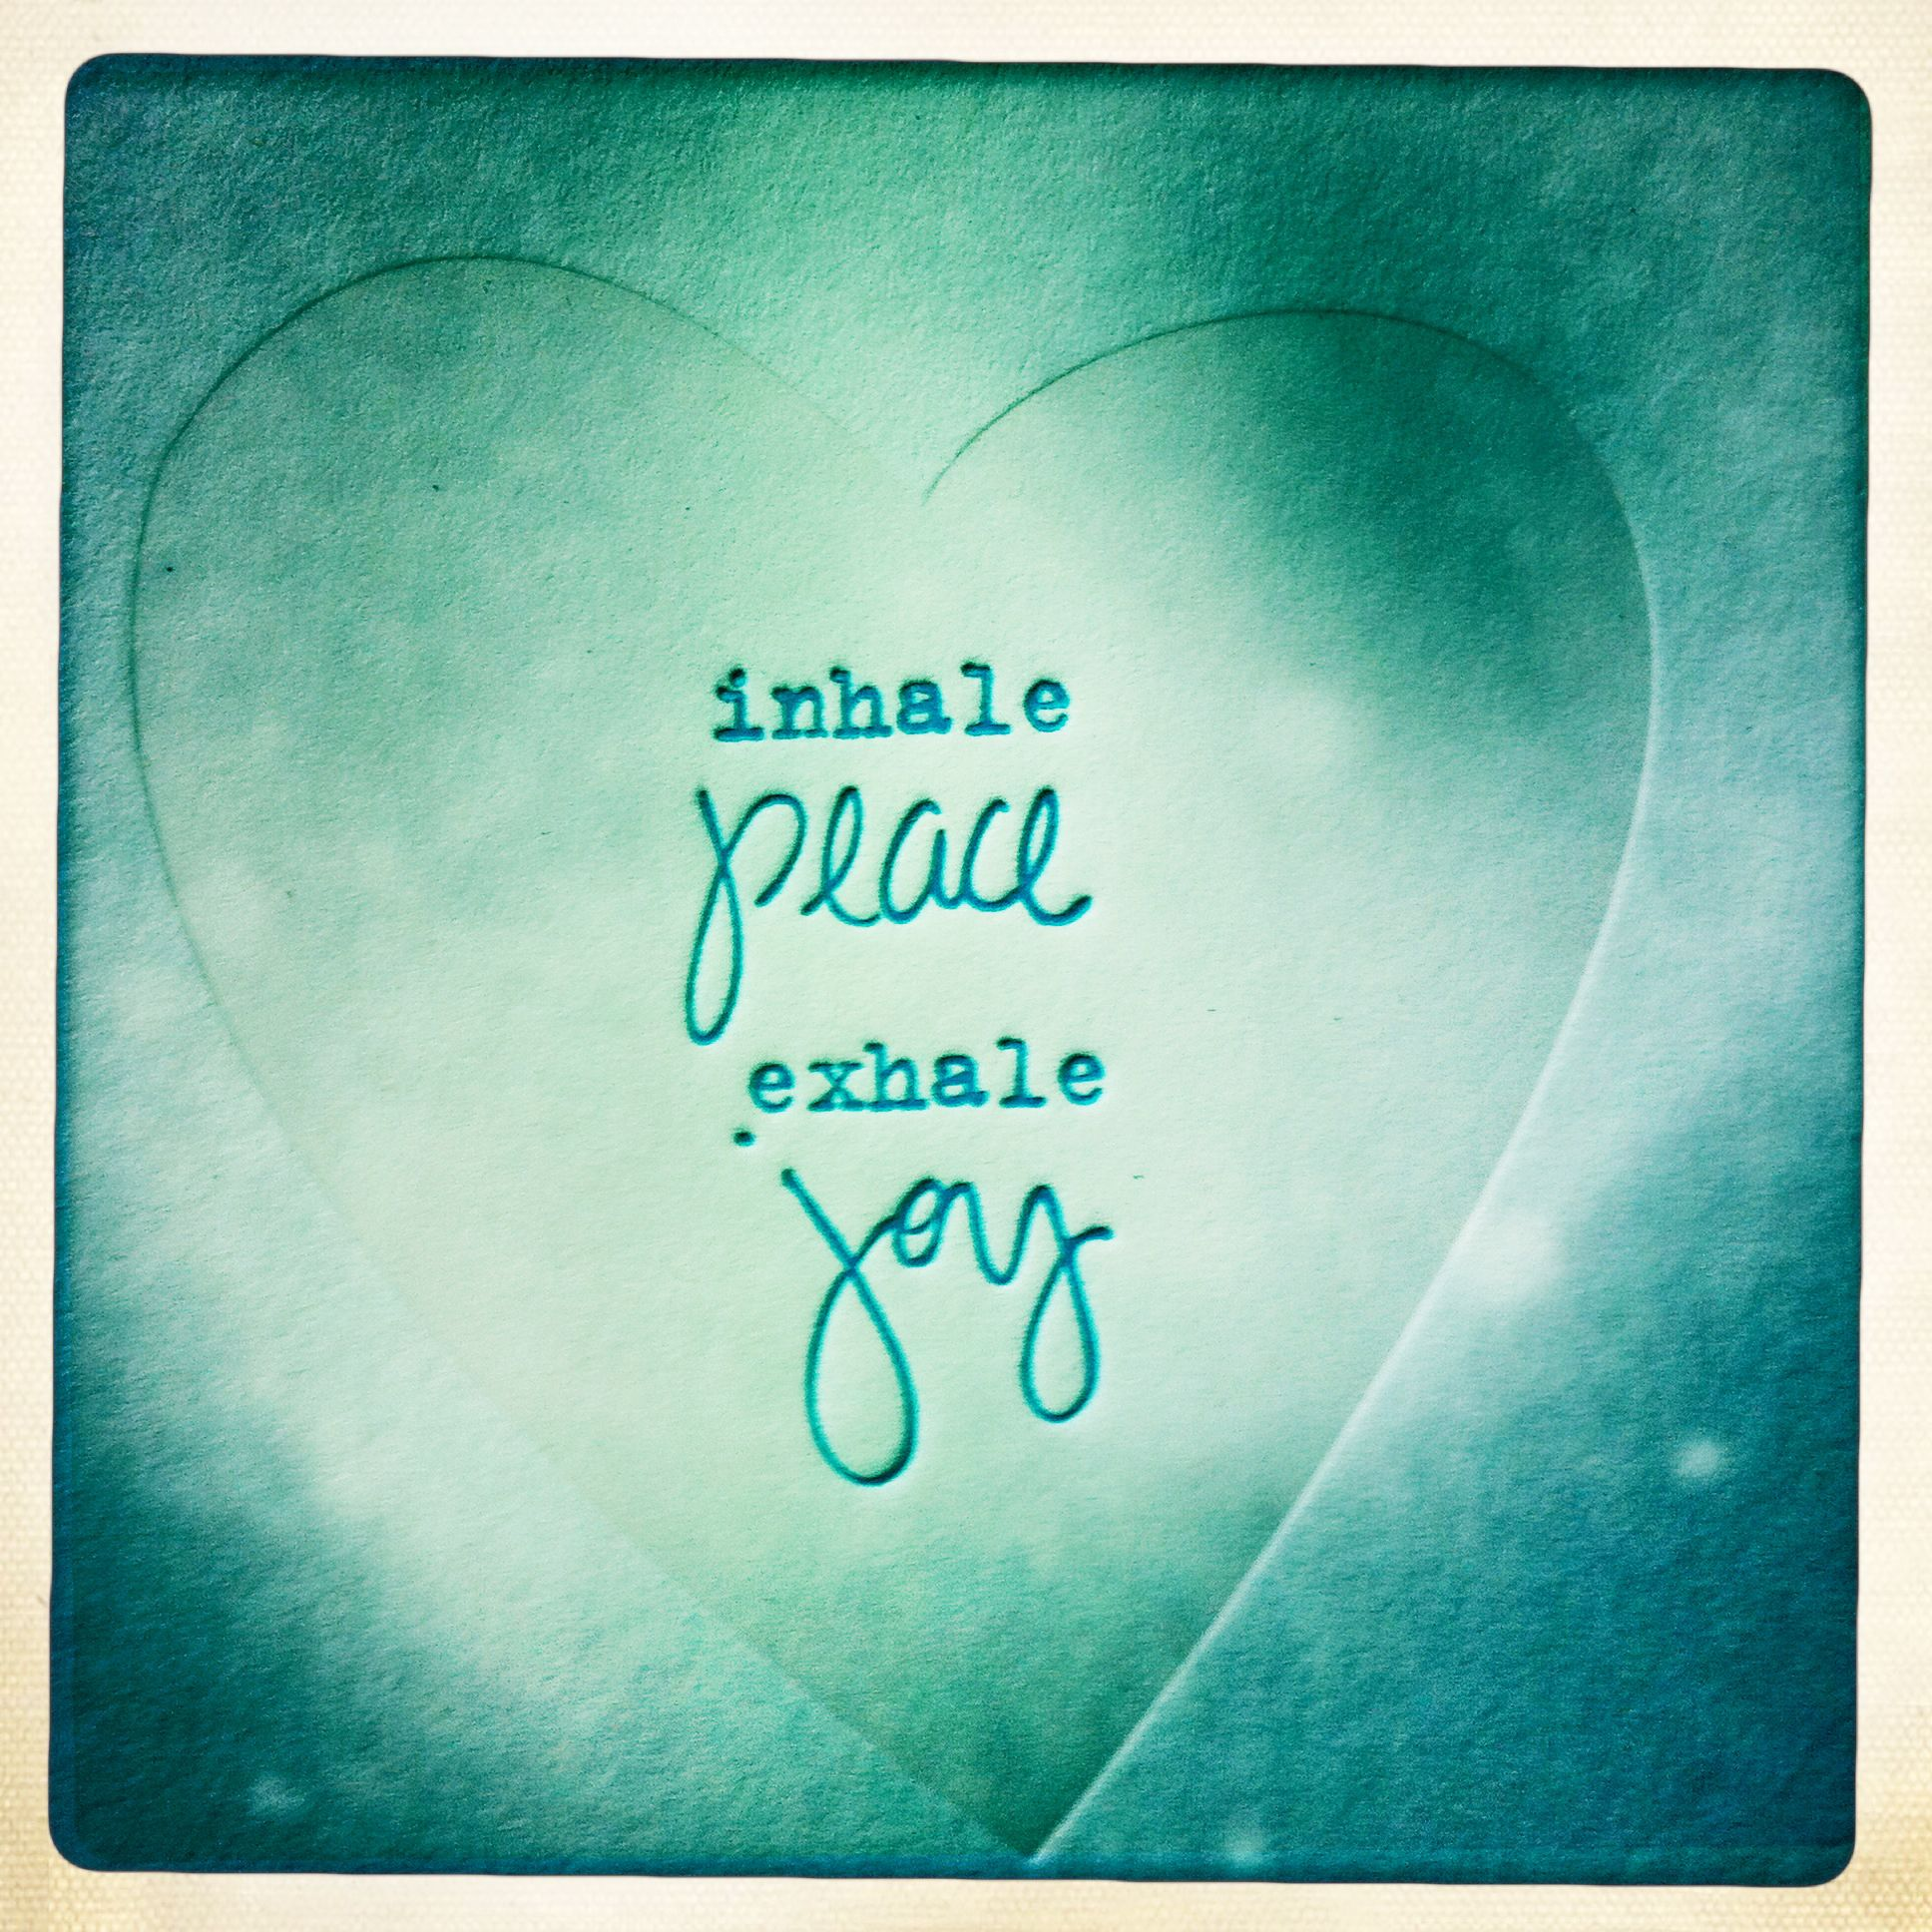 Peace And Joy Quotes: Inhale Peace, Exhale Joy..